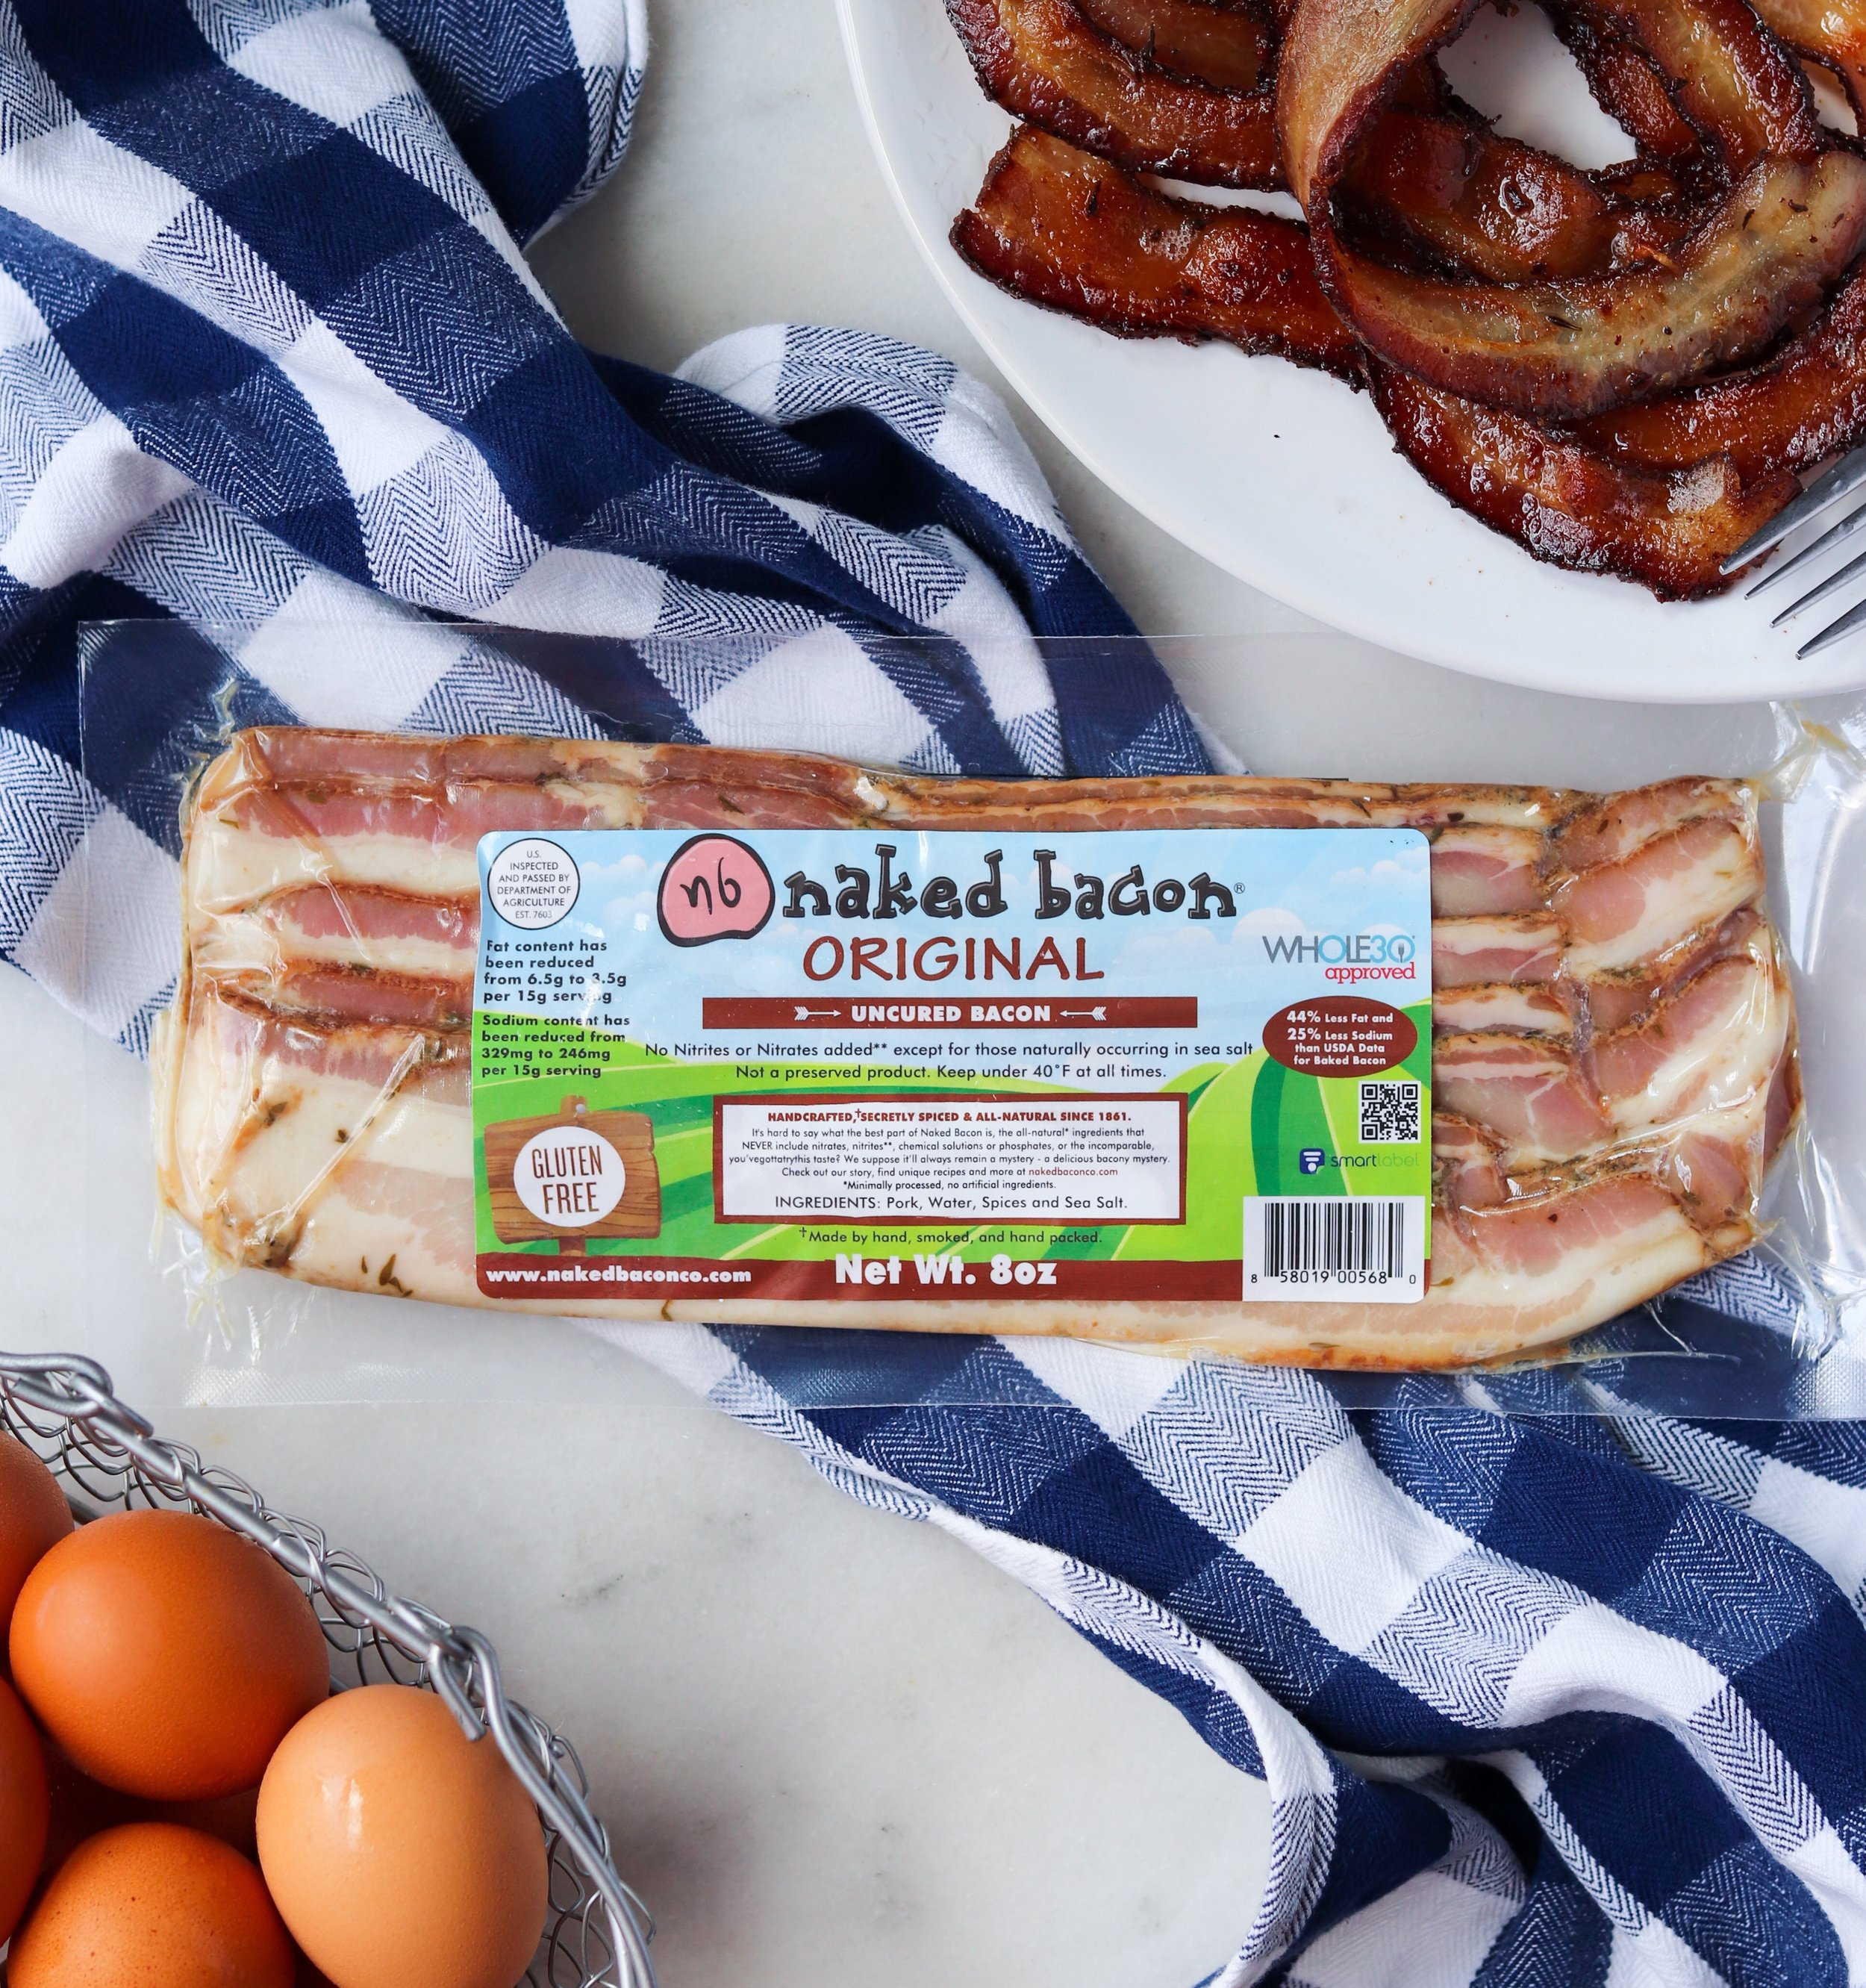 Original Naked Bacon